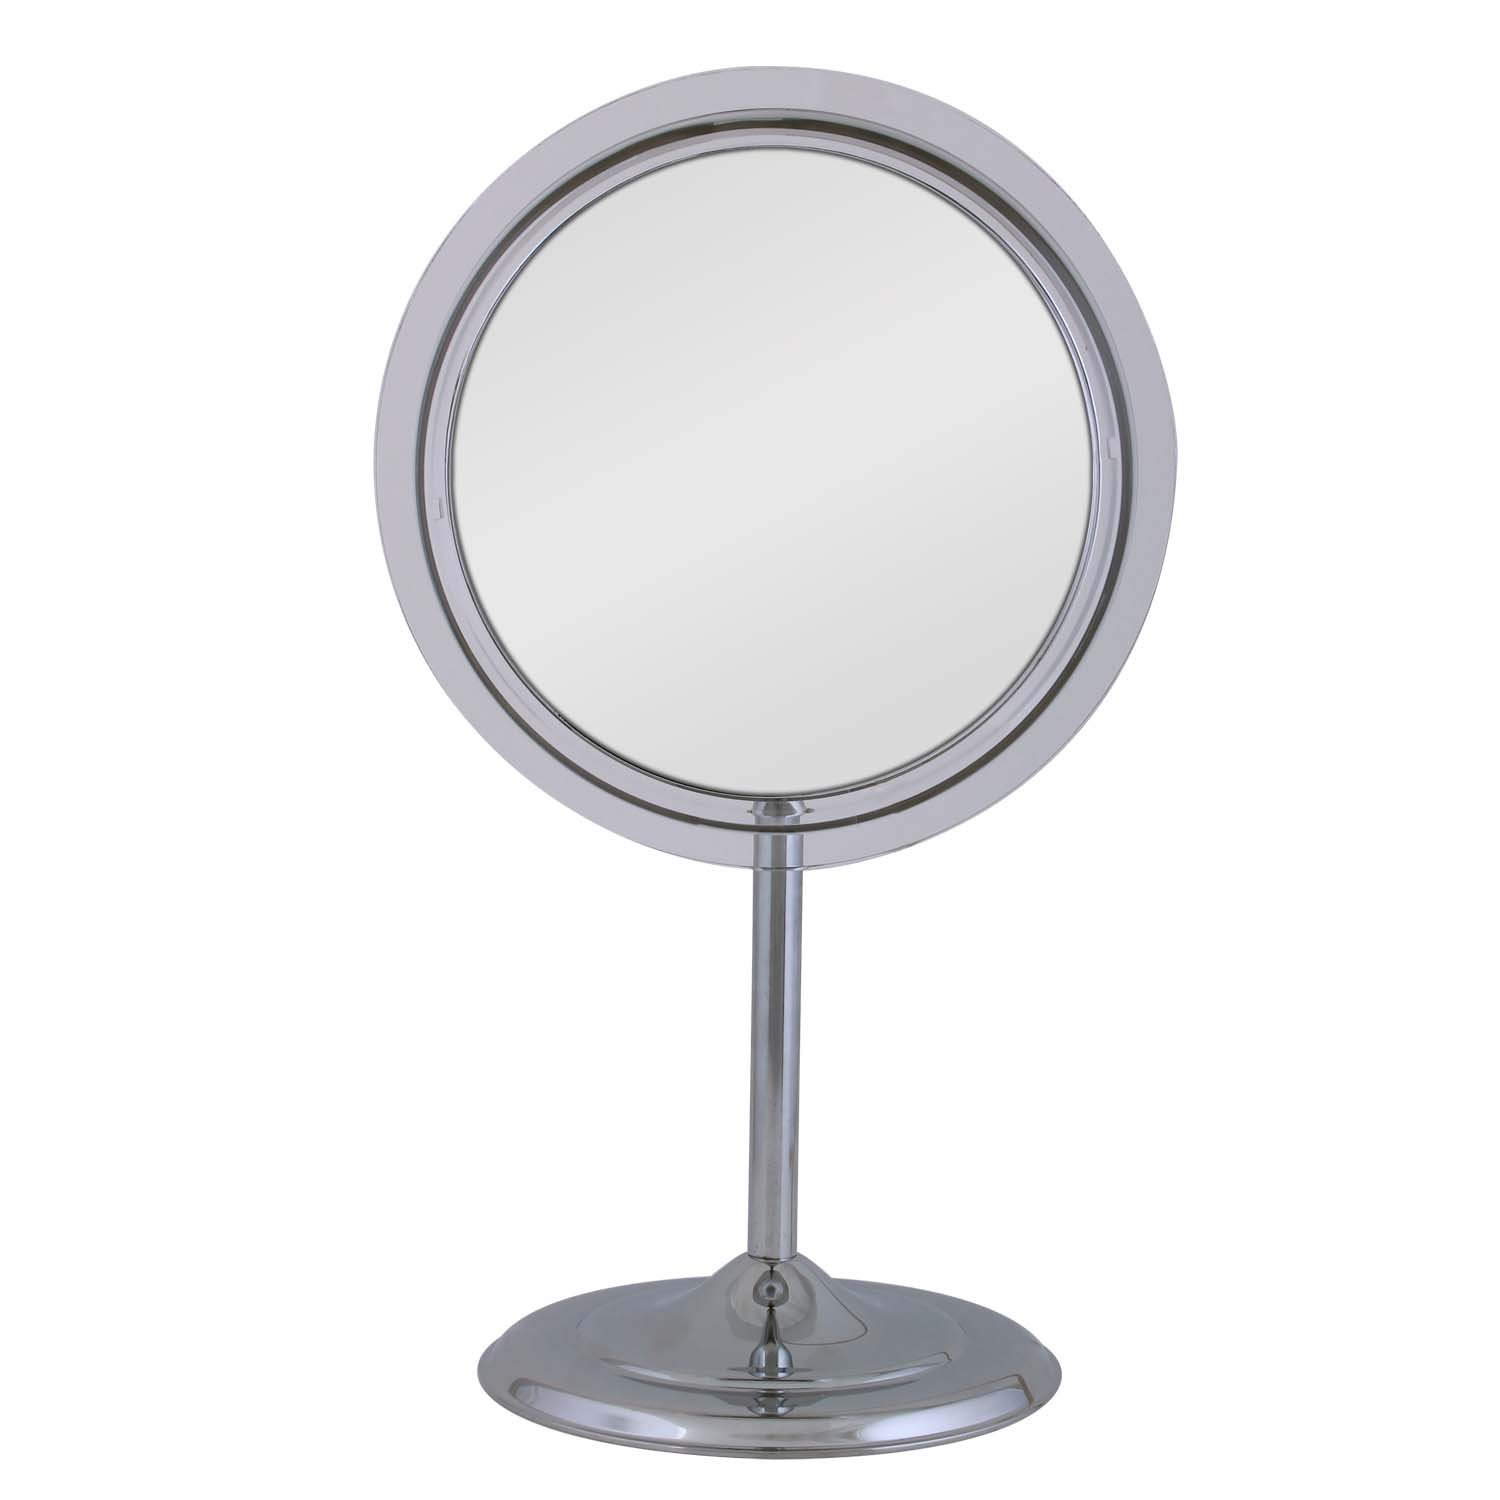 Zadro 7X Magnification Surround Lighted Adjustable Vanity Mirror, Chrome